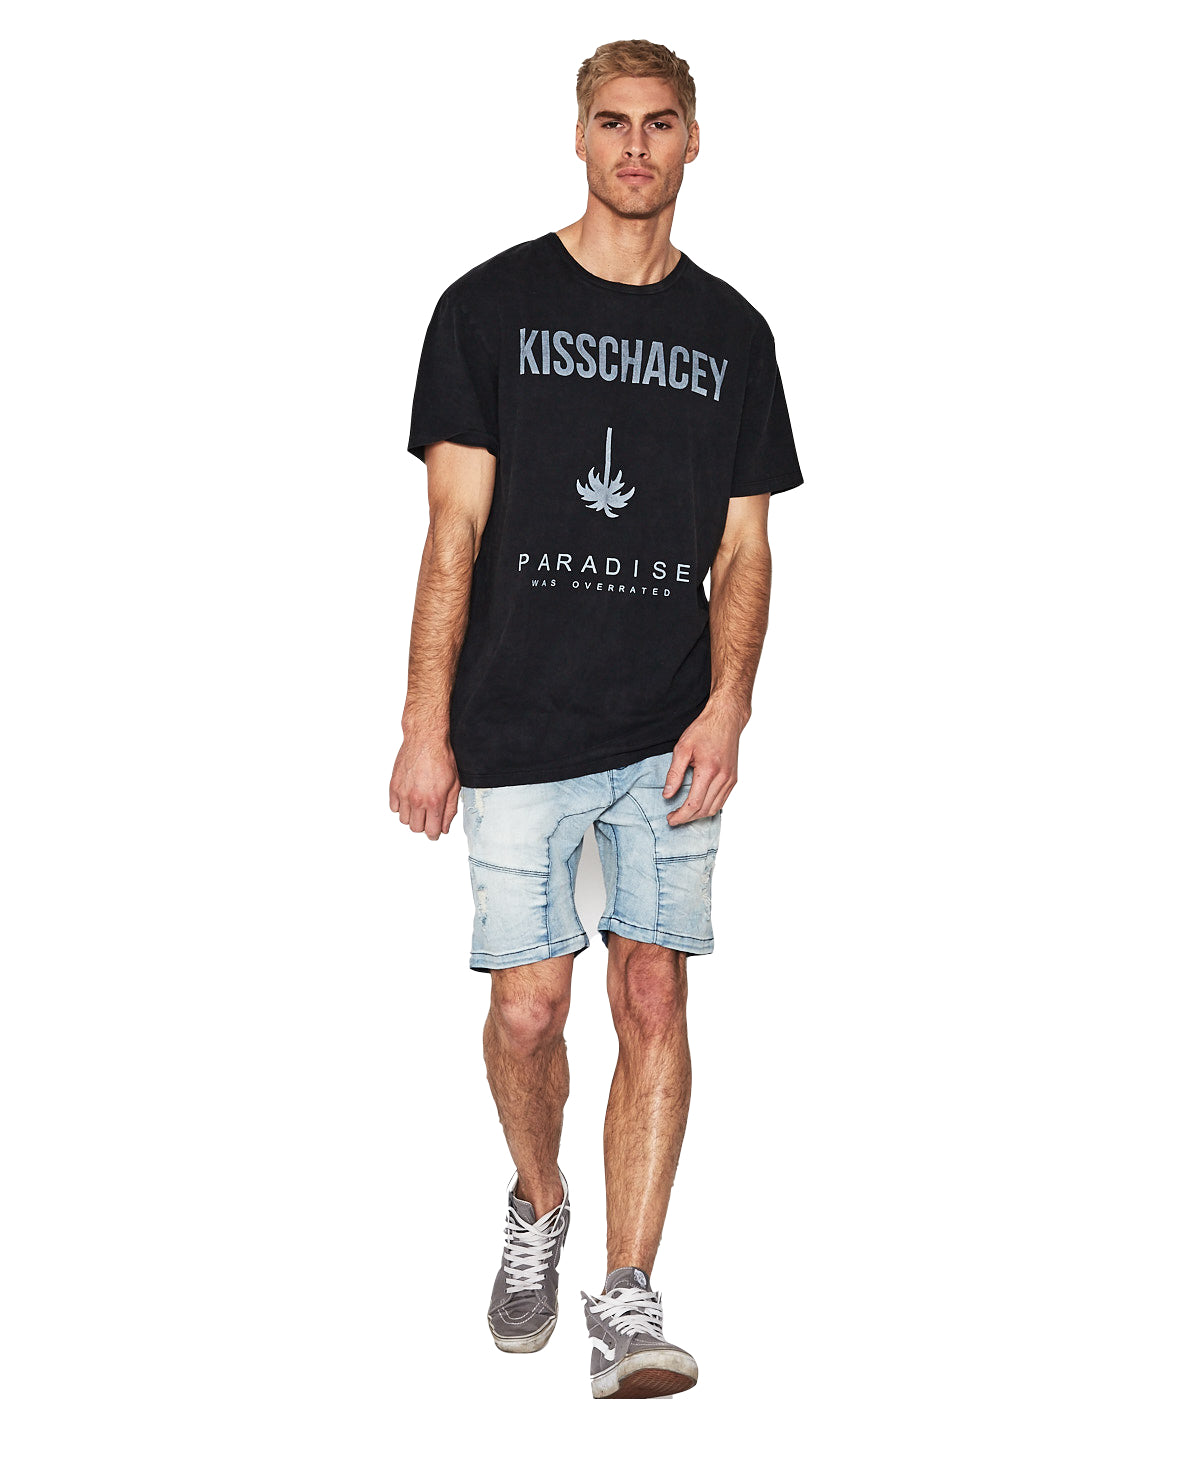 Kiss Chacey - Ascension Relaxed Fit Tee - Acid Black